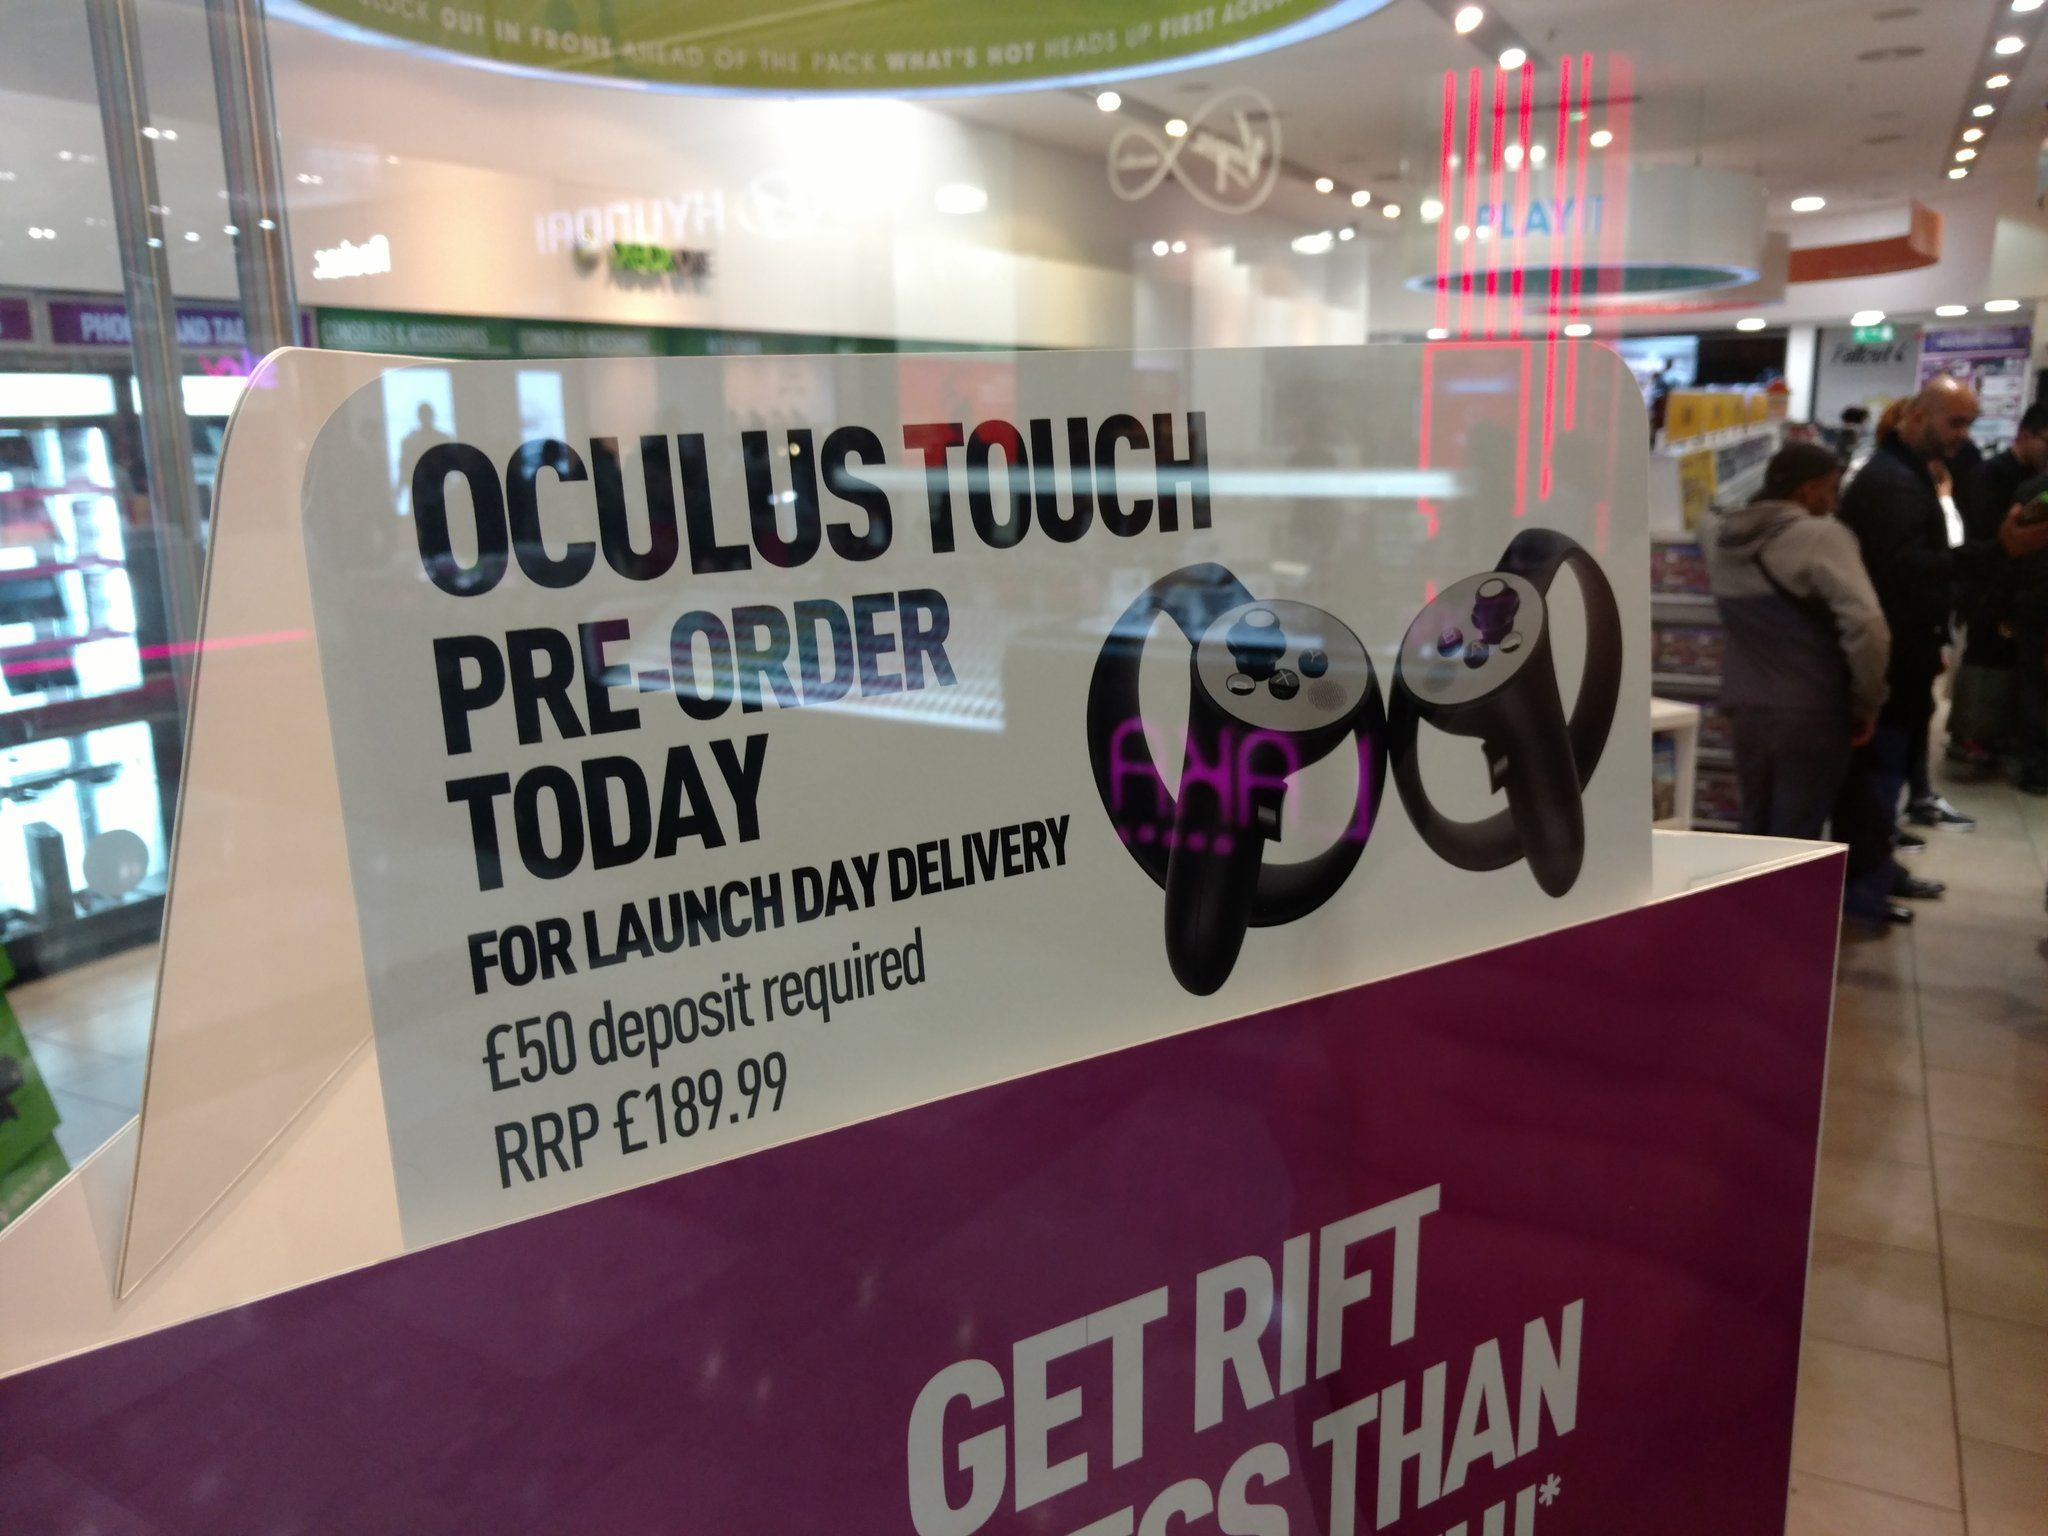 oculus-touch-ad